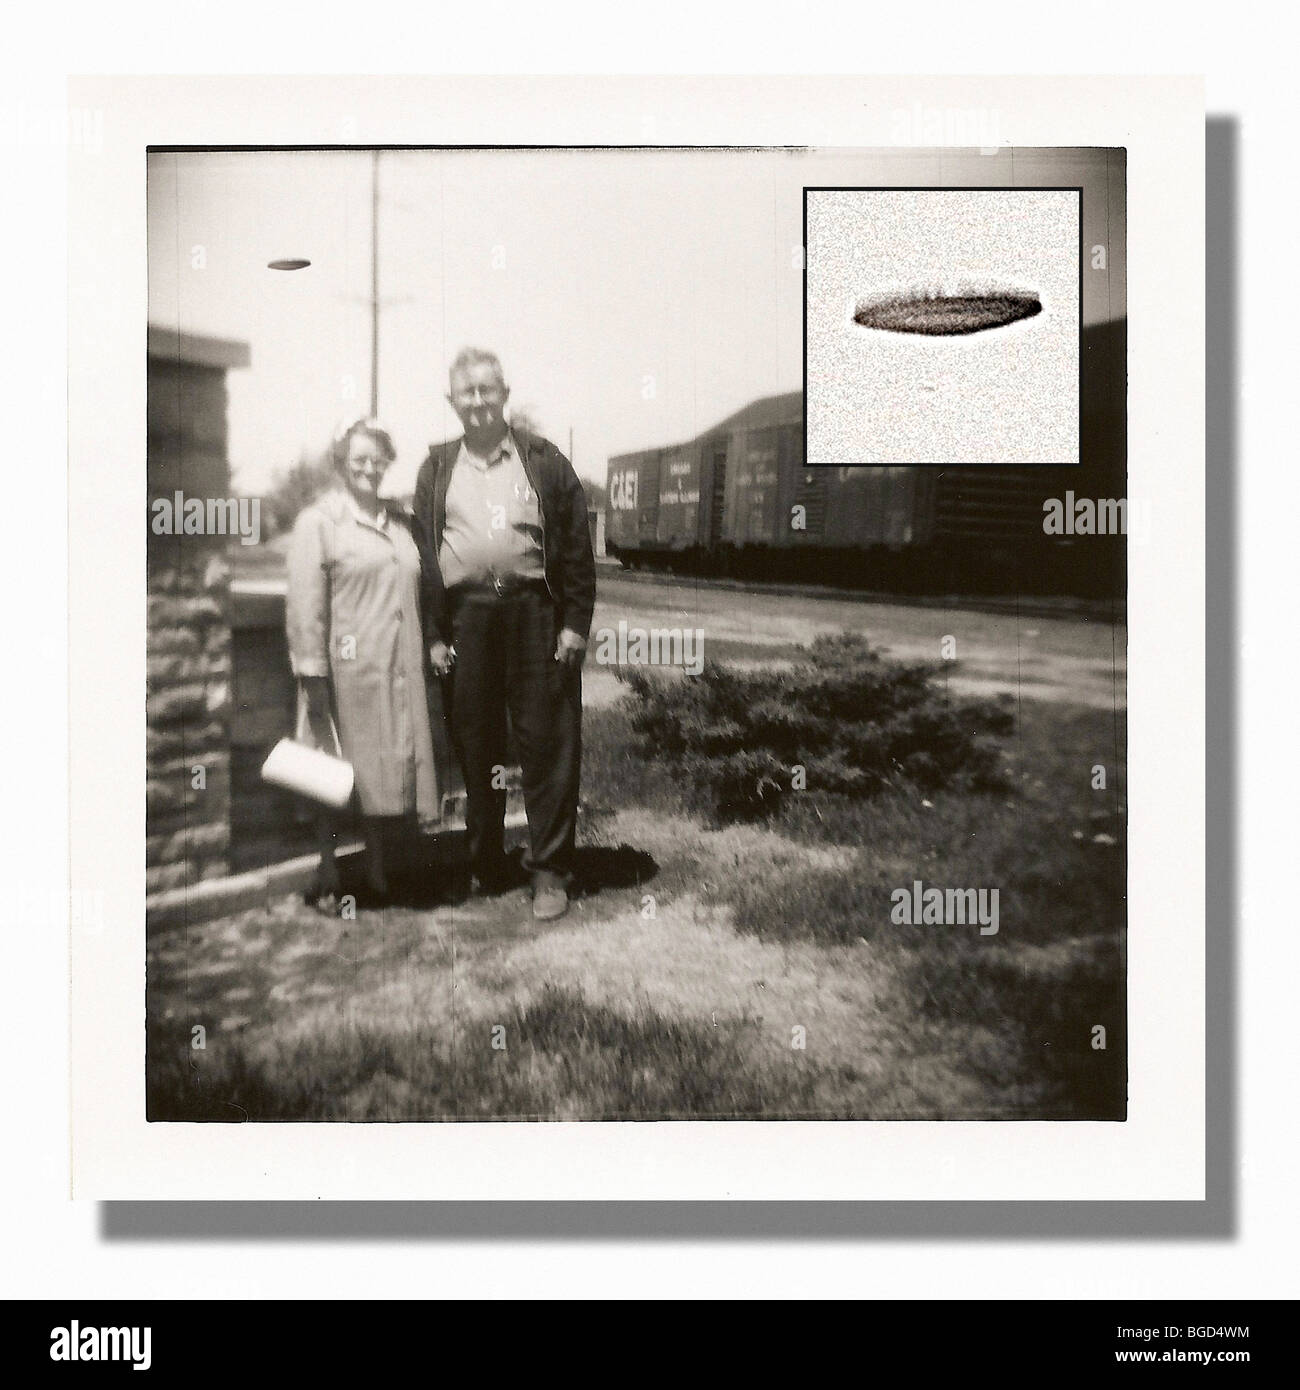 """Vintage"" UFO sighting (Old Polaroid image with UFO in background.  UFO enlarged & inset) - Stock Image"